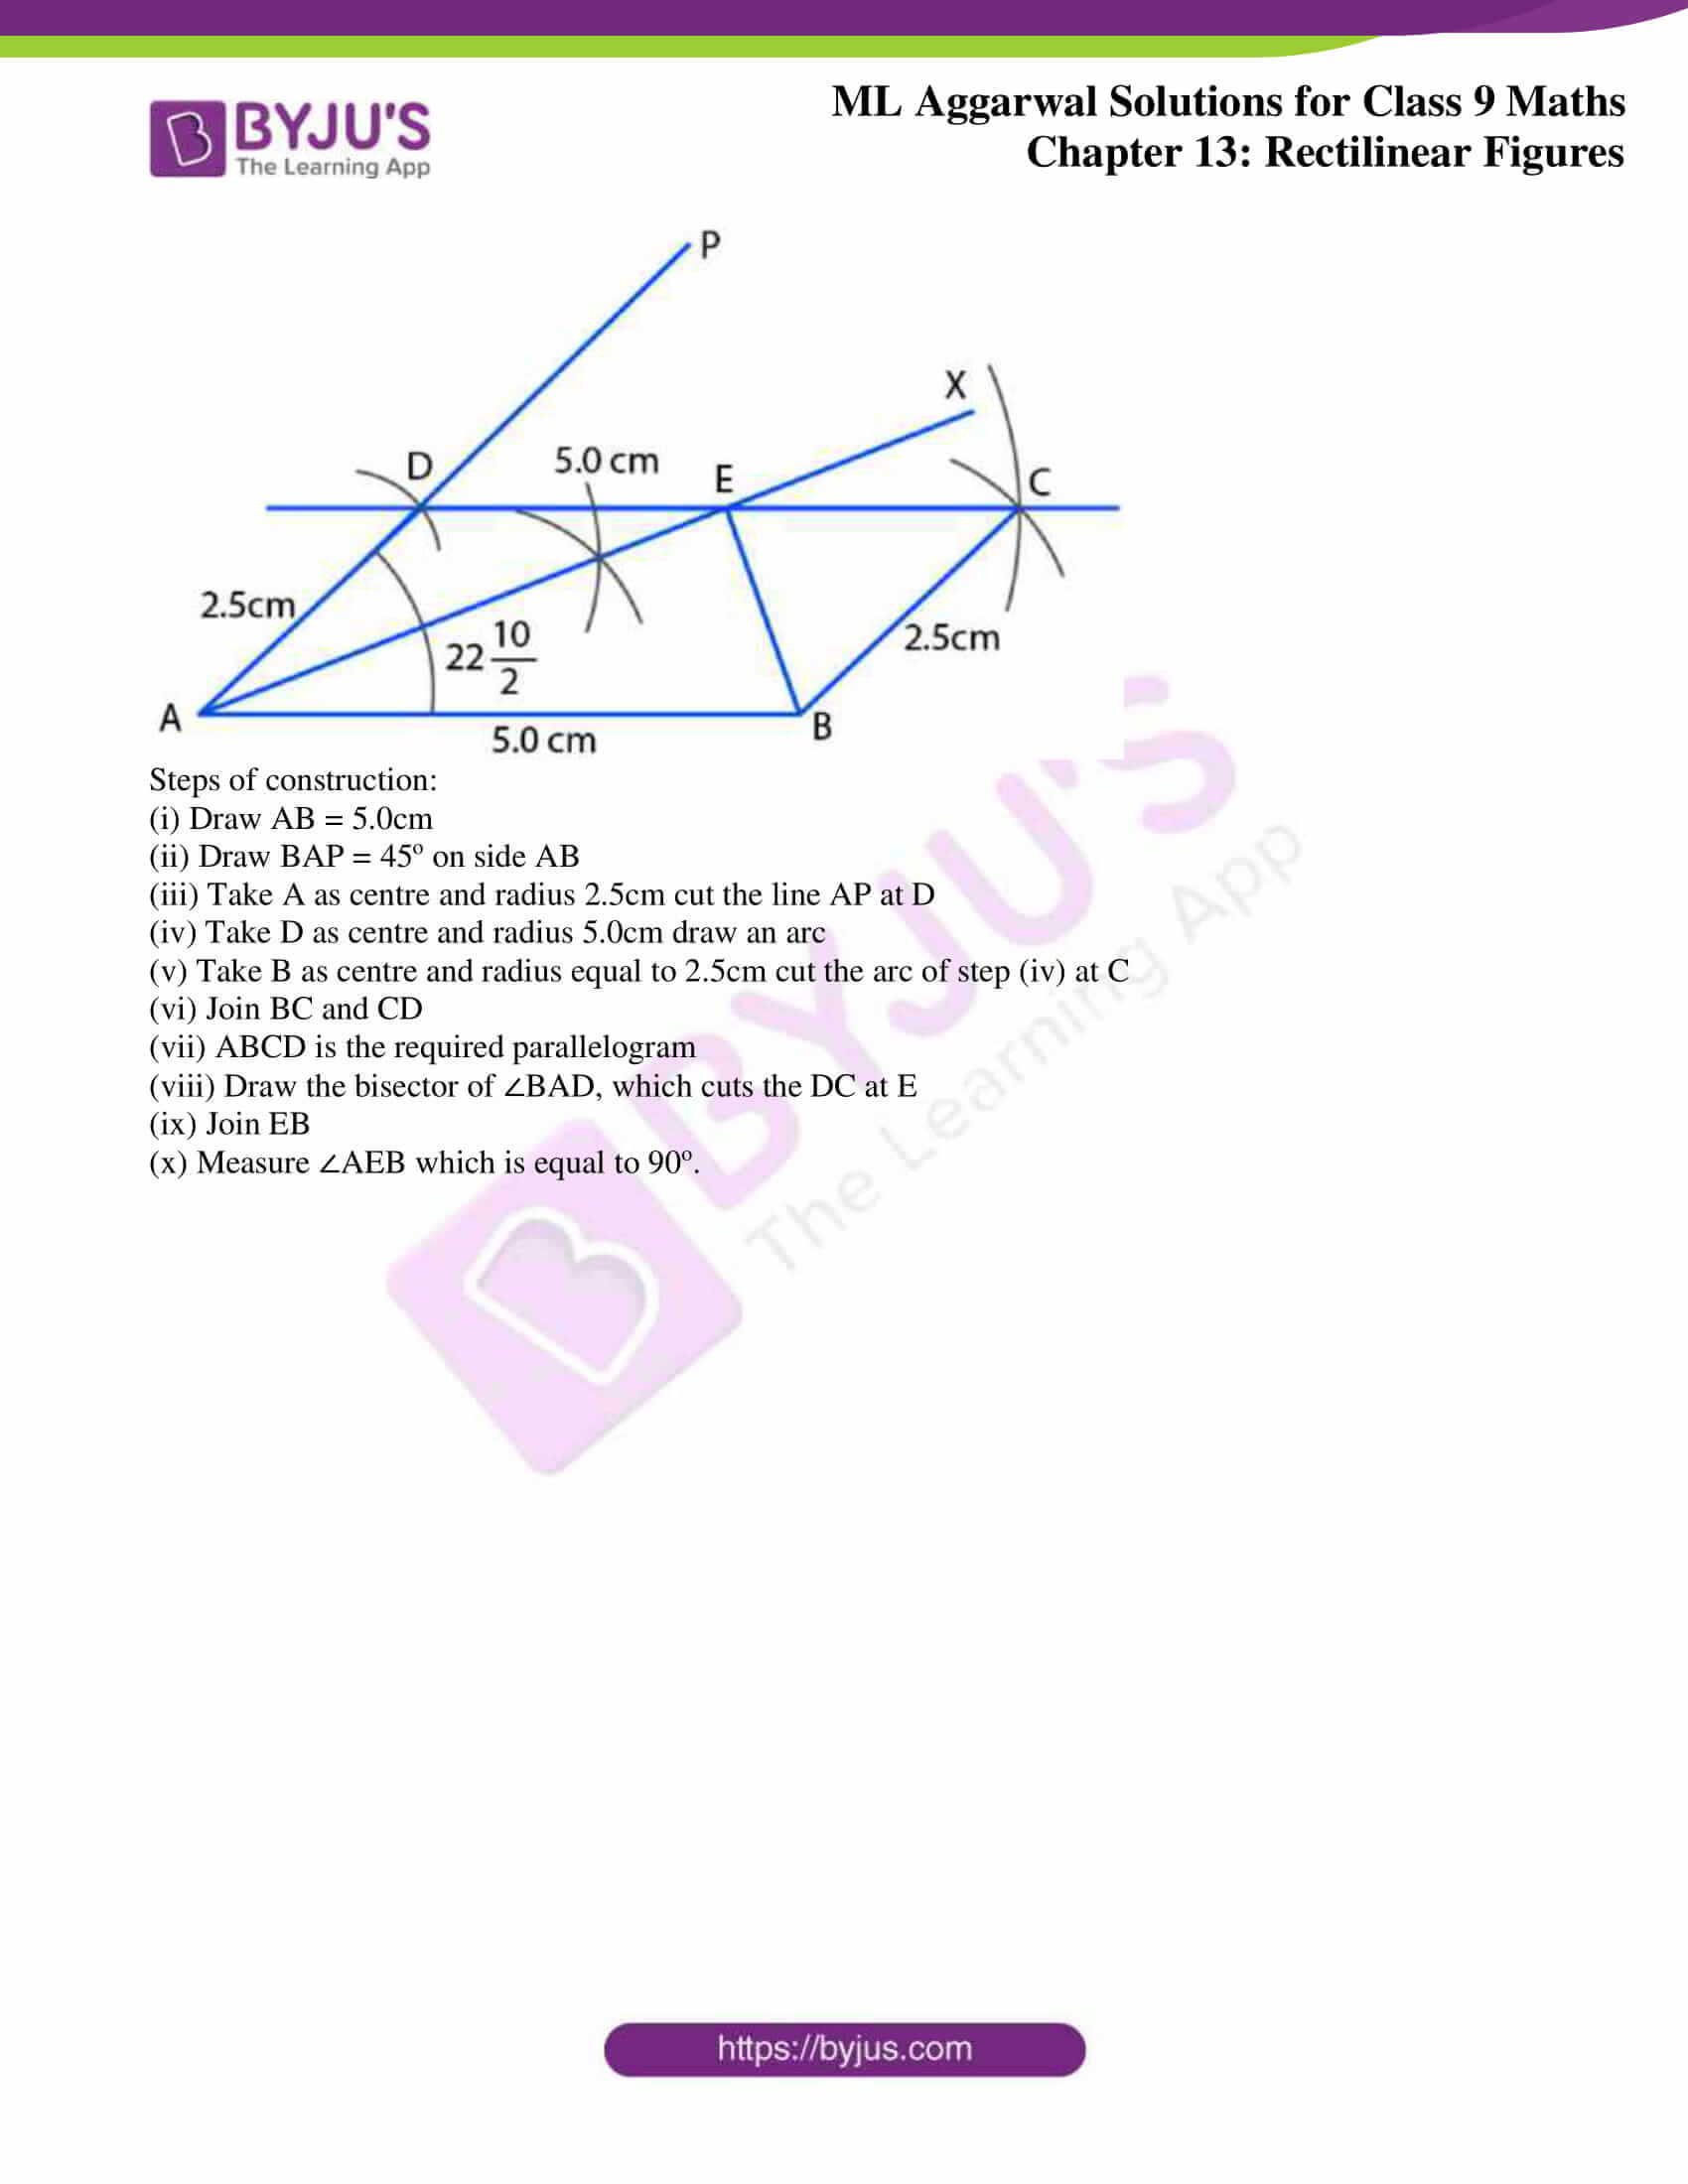 ml aggarwal solutions for class 9 maths chapter 13 46